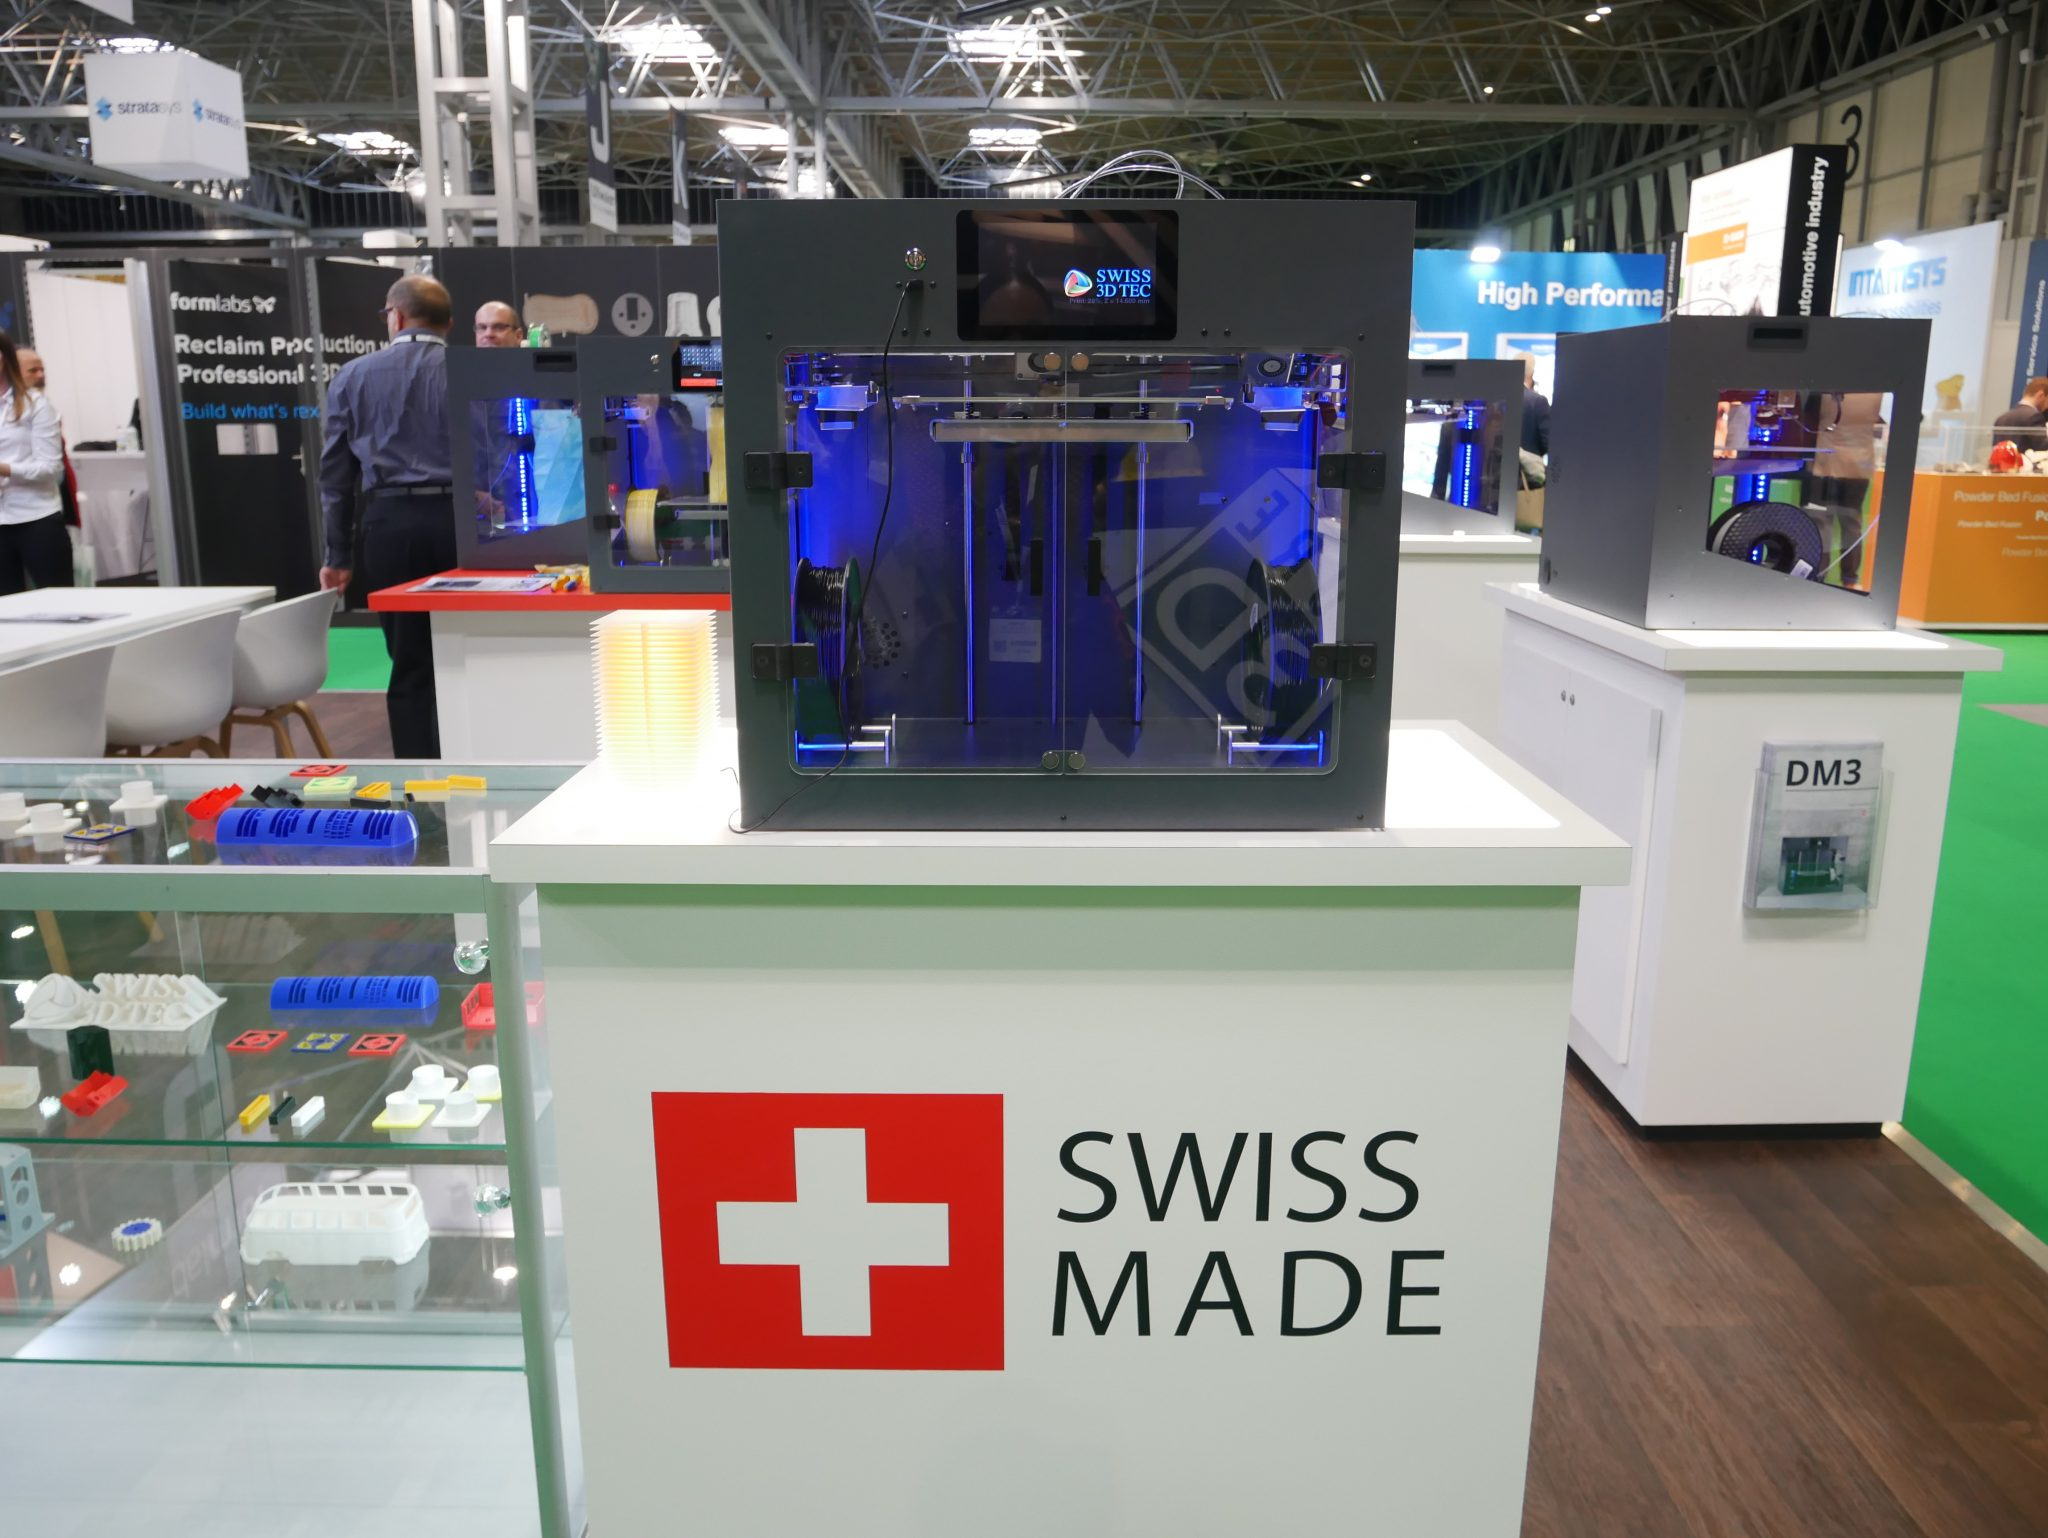 The DM3 printer from Swiss 3D TEC. Photo by Tia Vialva.